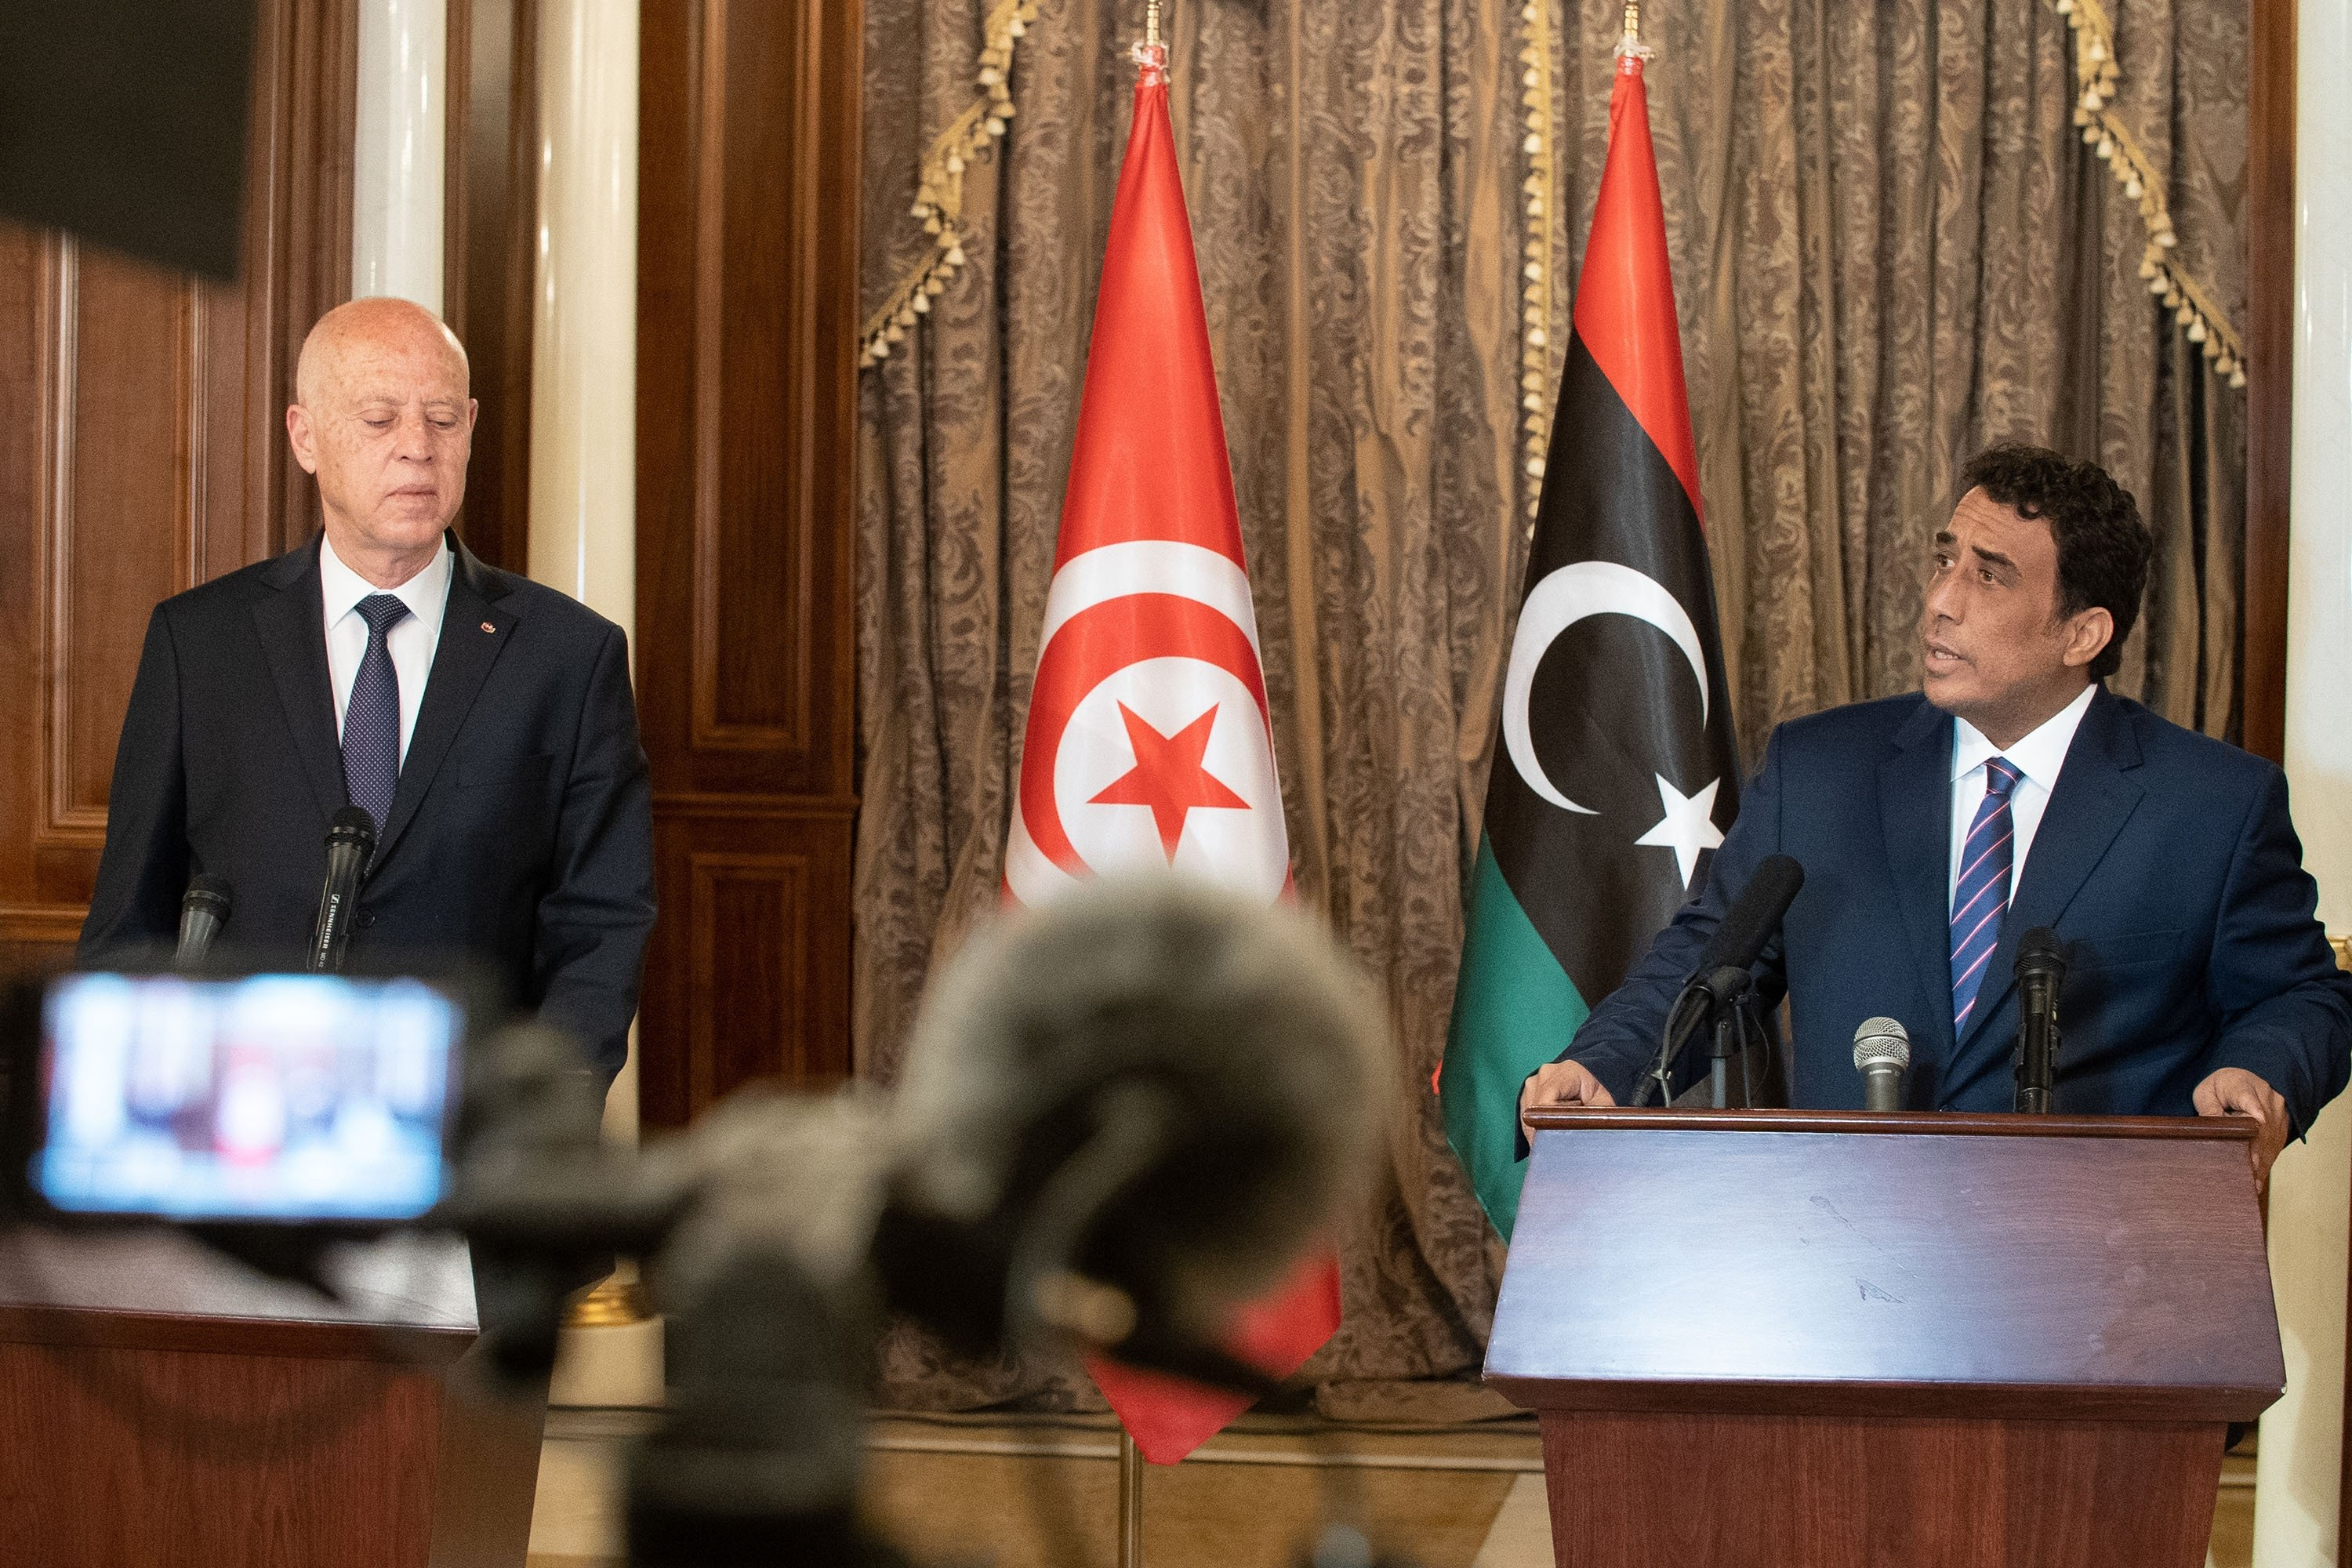 The press conference between the new Libyan Presidential Council head, Mohamed Menfi and the President of Tunisia Kais Saied, Tripoli, Libya, March 17, 2021. (Shutterstock Photo)